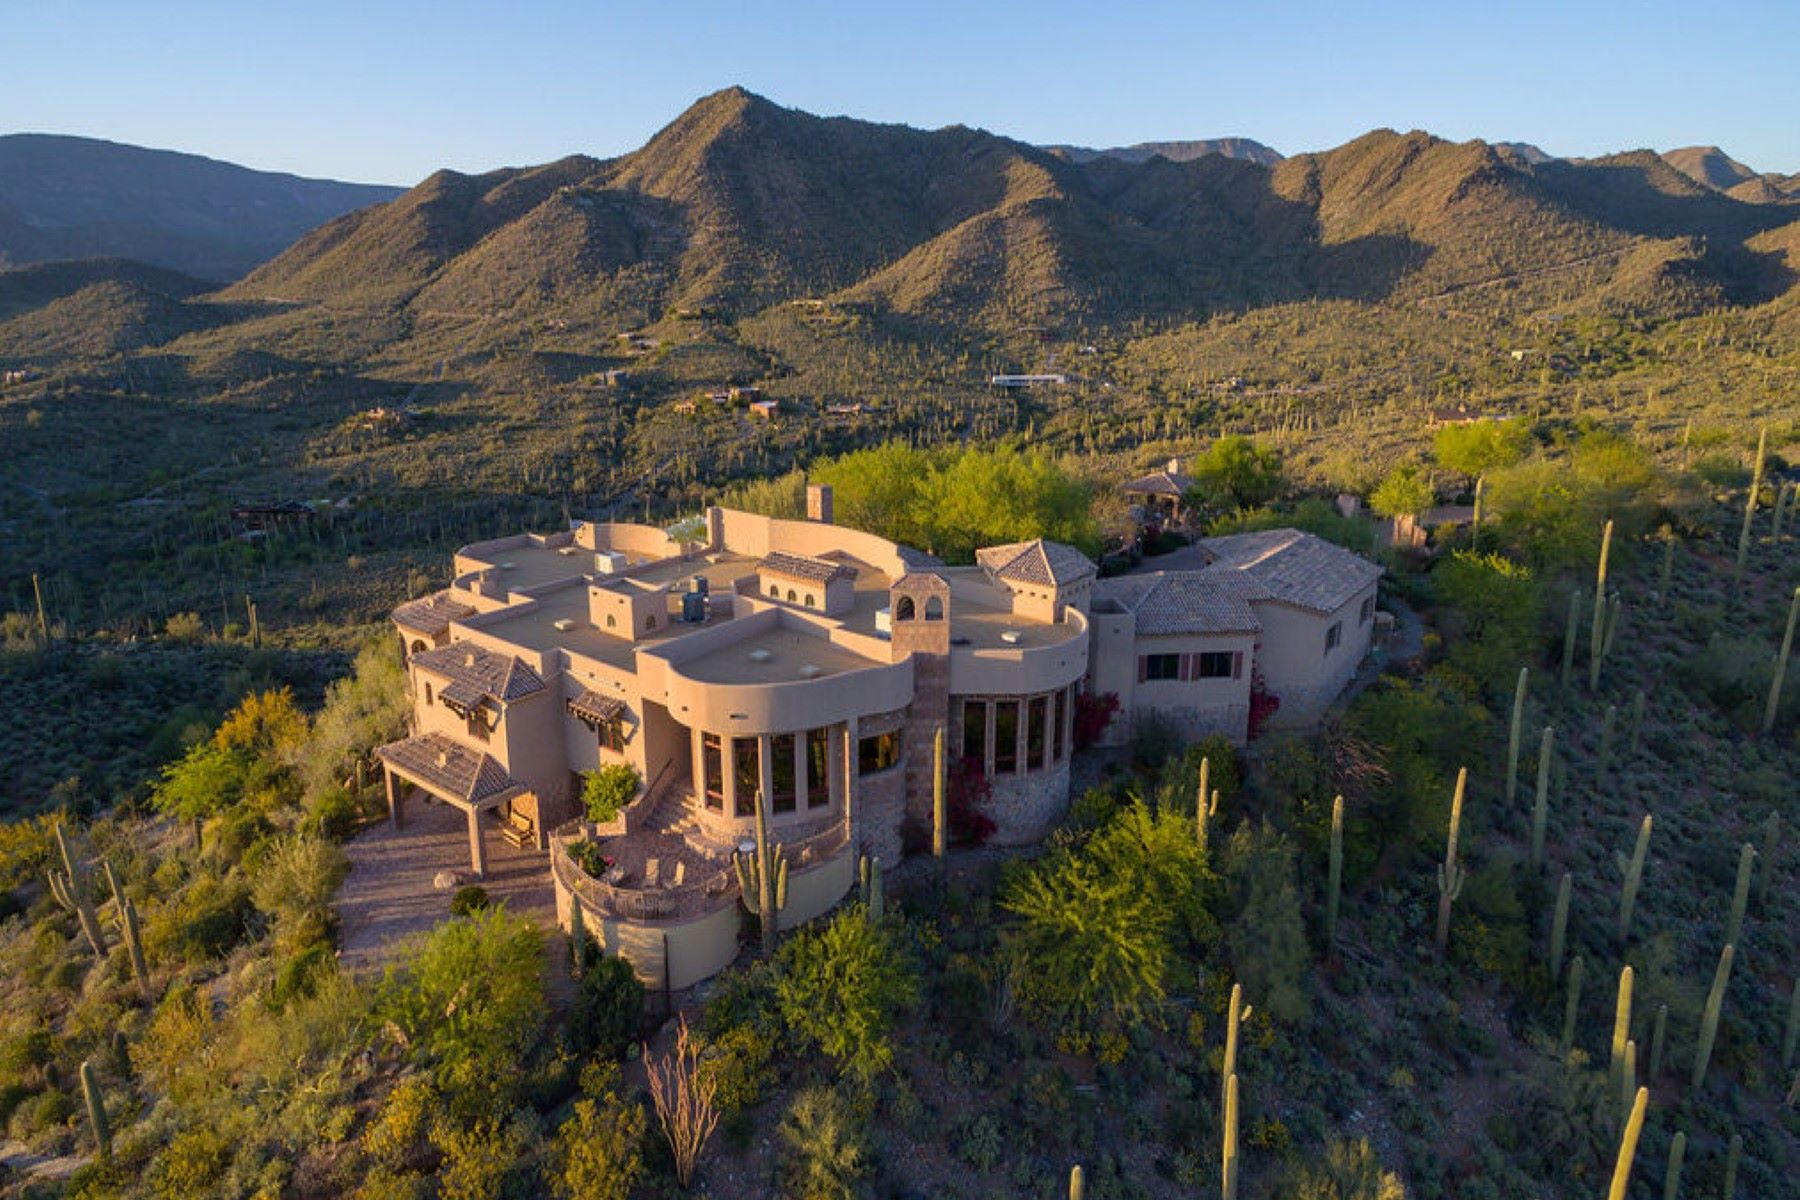 Villa per Vendita alle ore Phoenix area's most secluded and private gated mountaintop estate 42820 N Fleming Springs Rd Cave Creek, Arizona, 85331 Stati Uniti